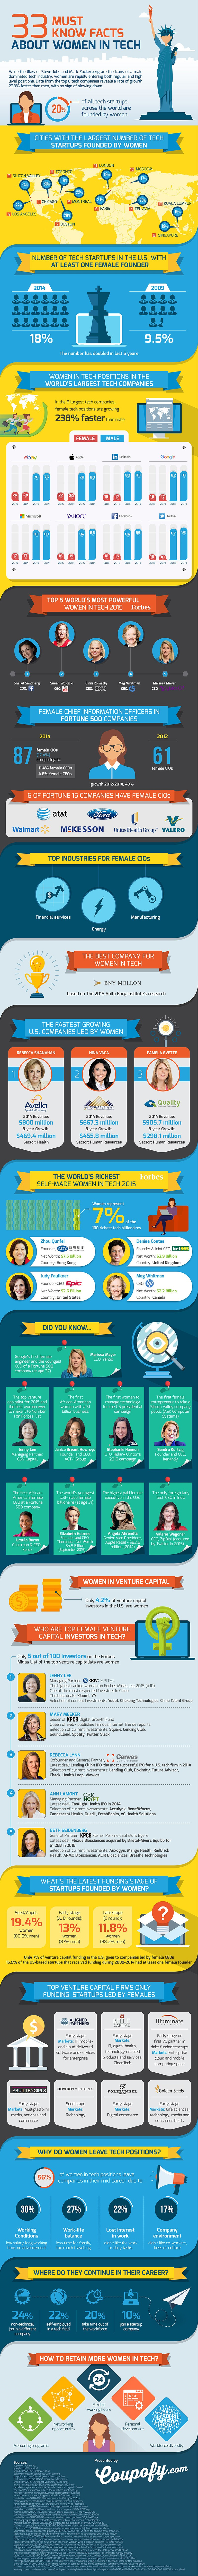 33 Must Know Facts About Women In Tech - Infographic